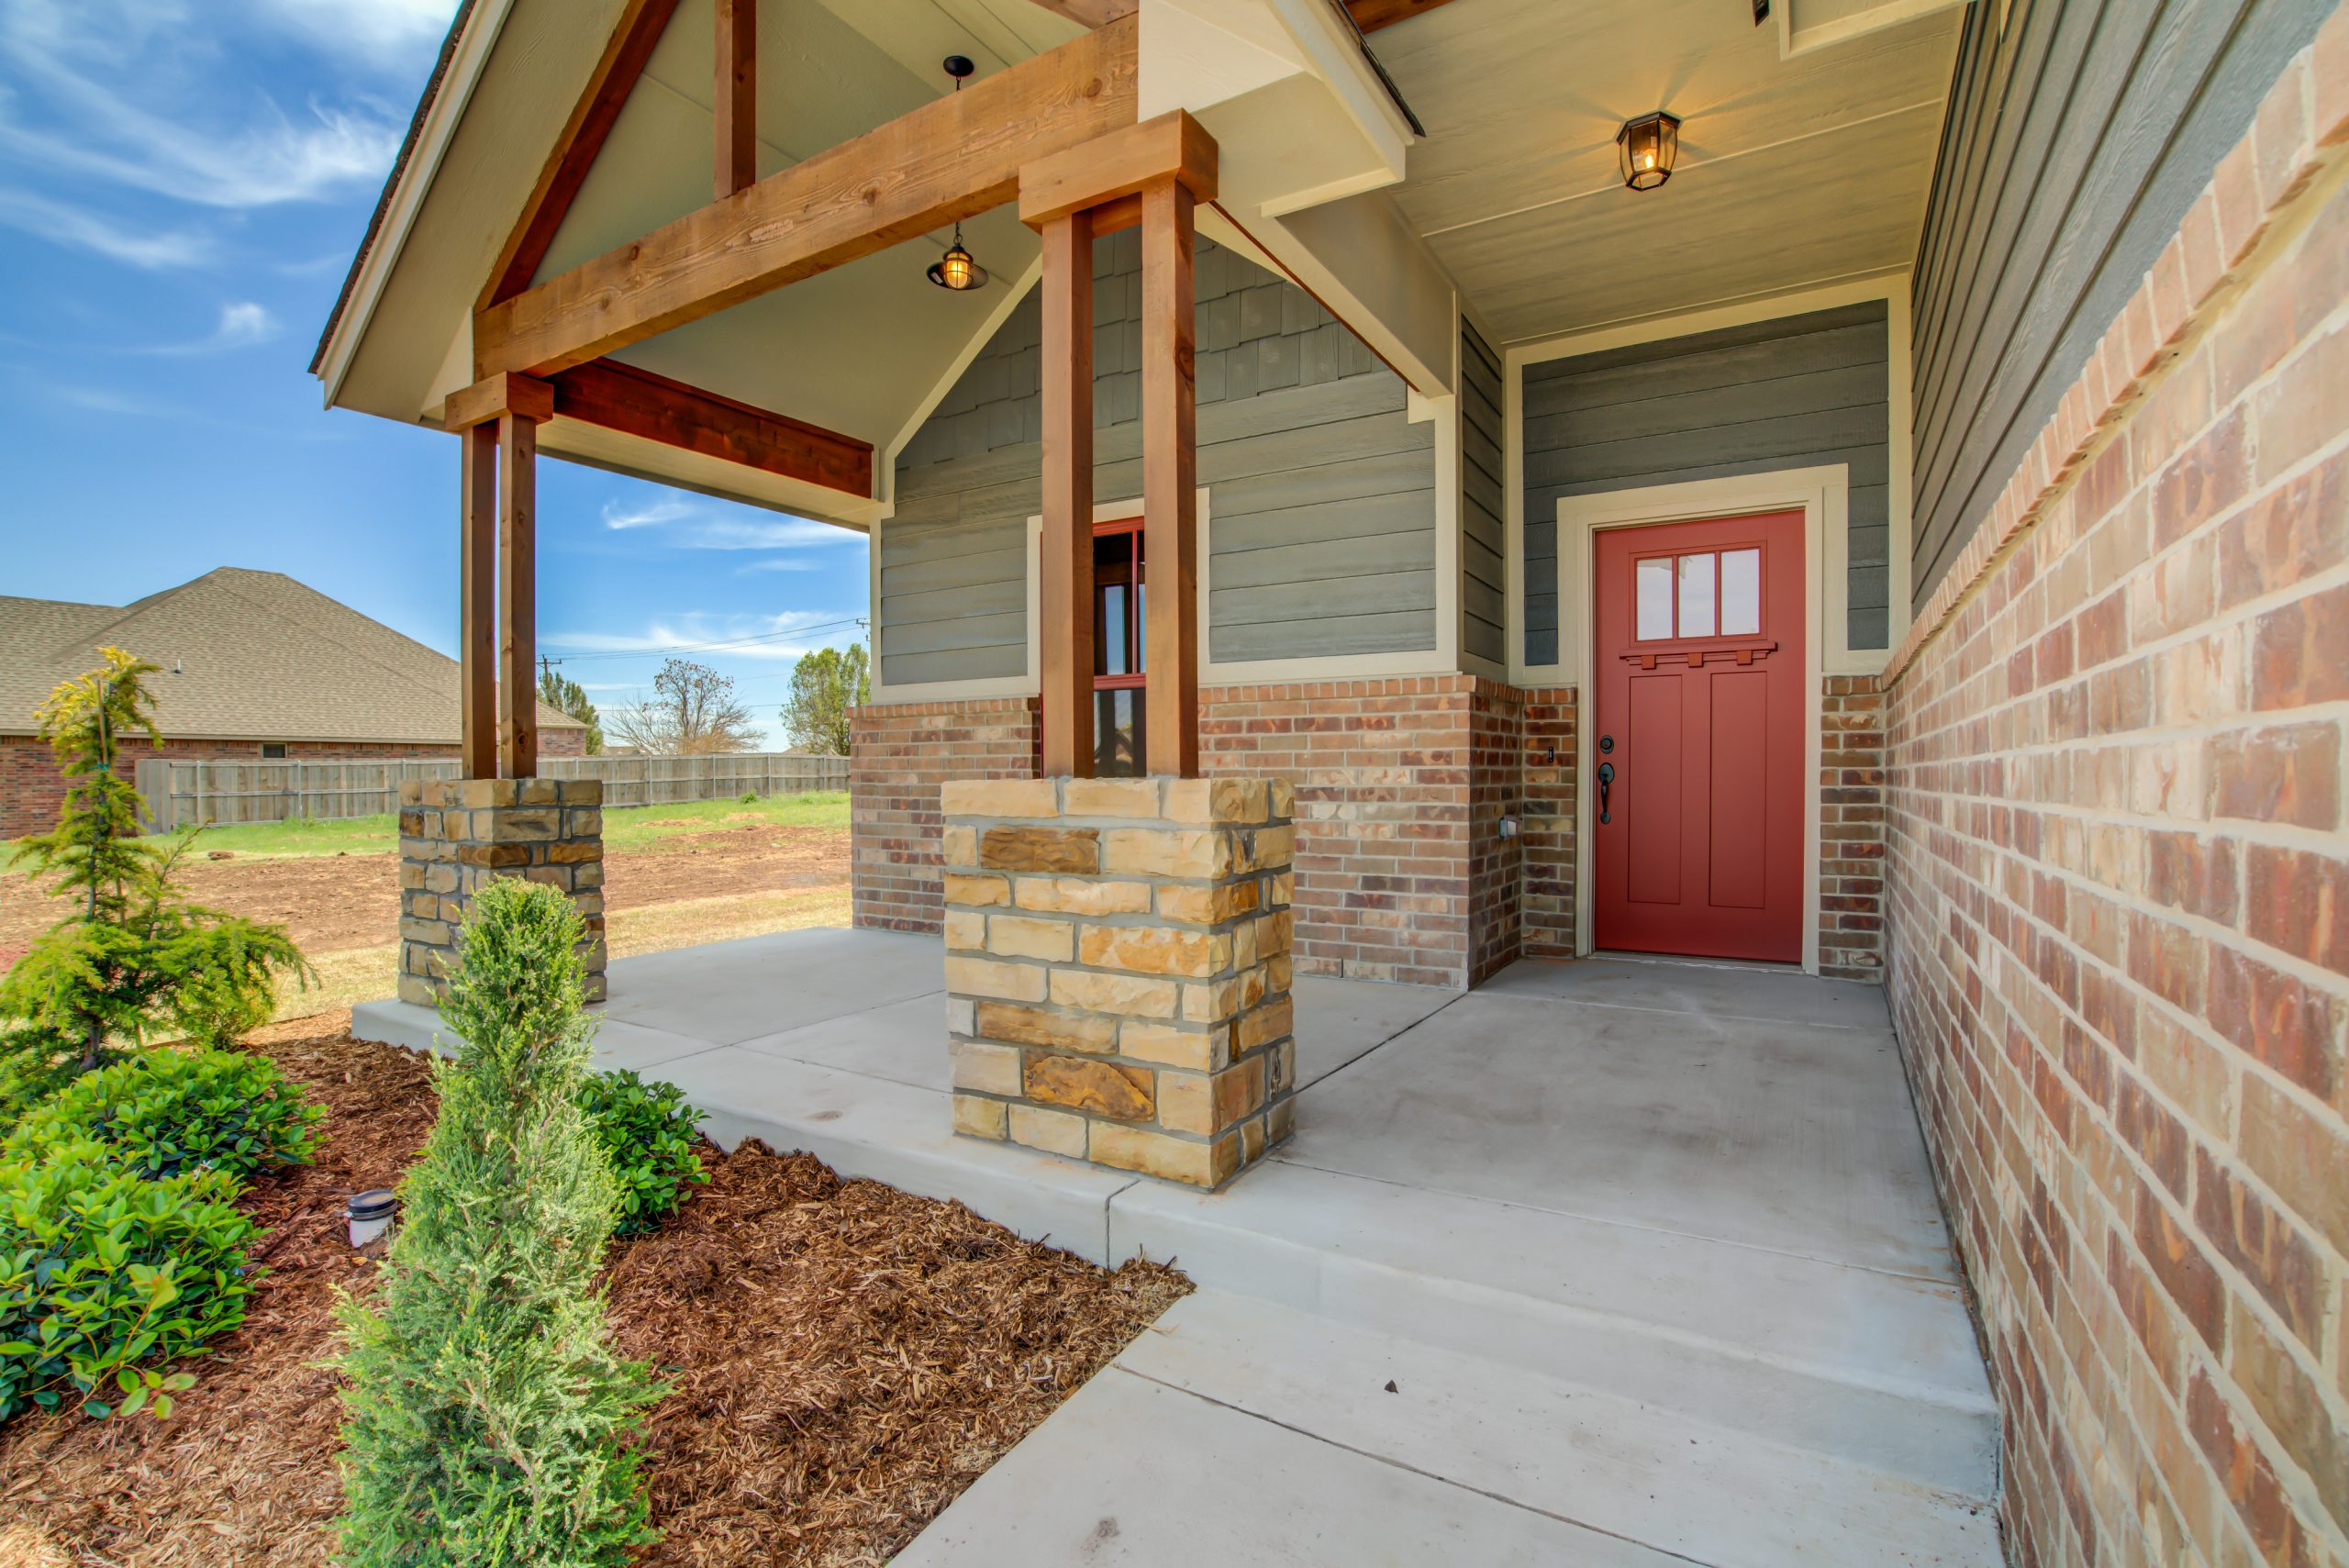 Quality Home Designed By Covenant Home Builders. Building Homes in OKC, Yukon, Mustang, Edmond, Piedmont, and Deer Creek.